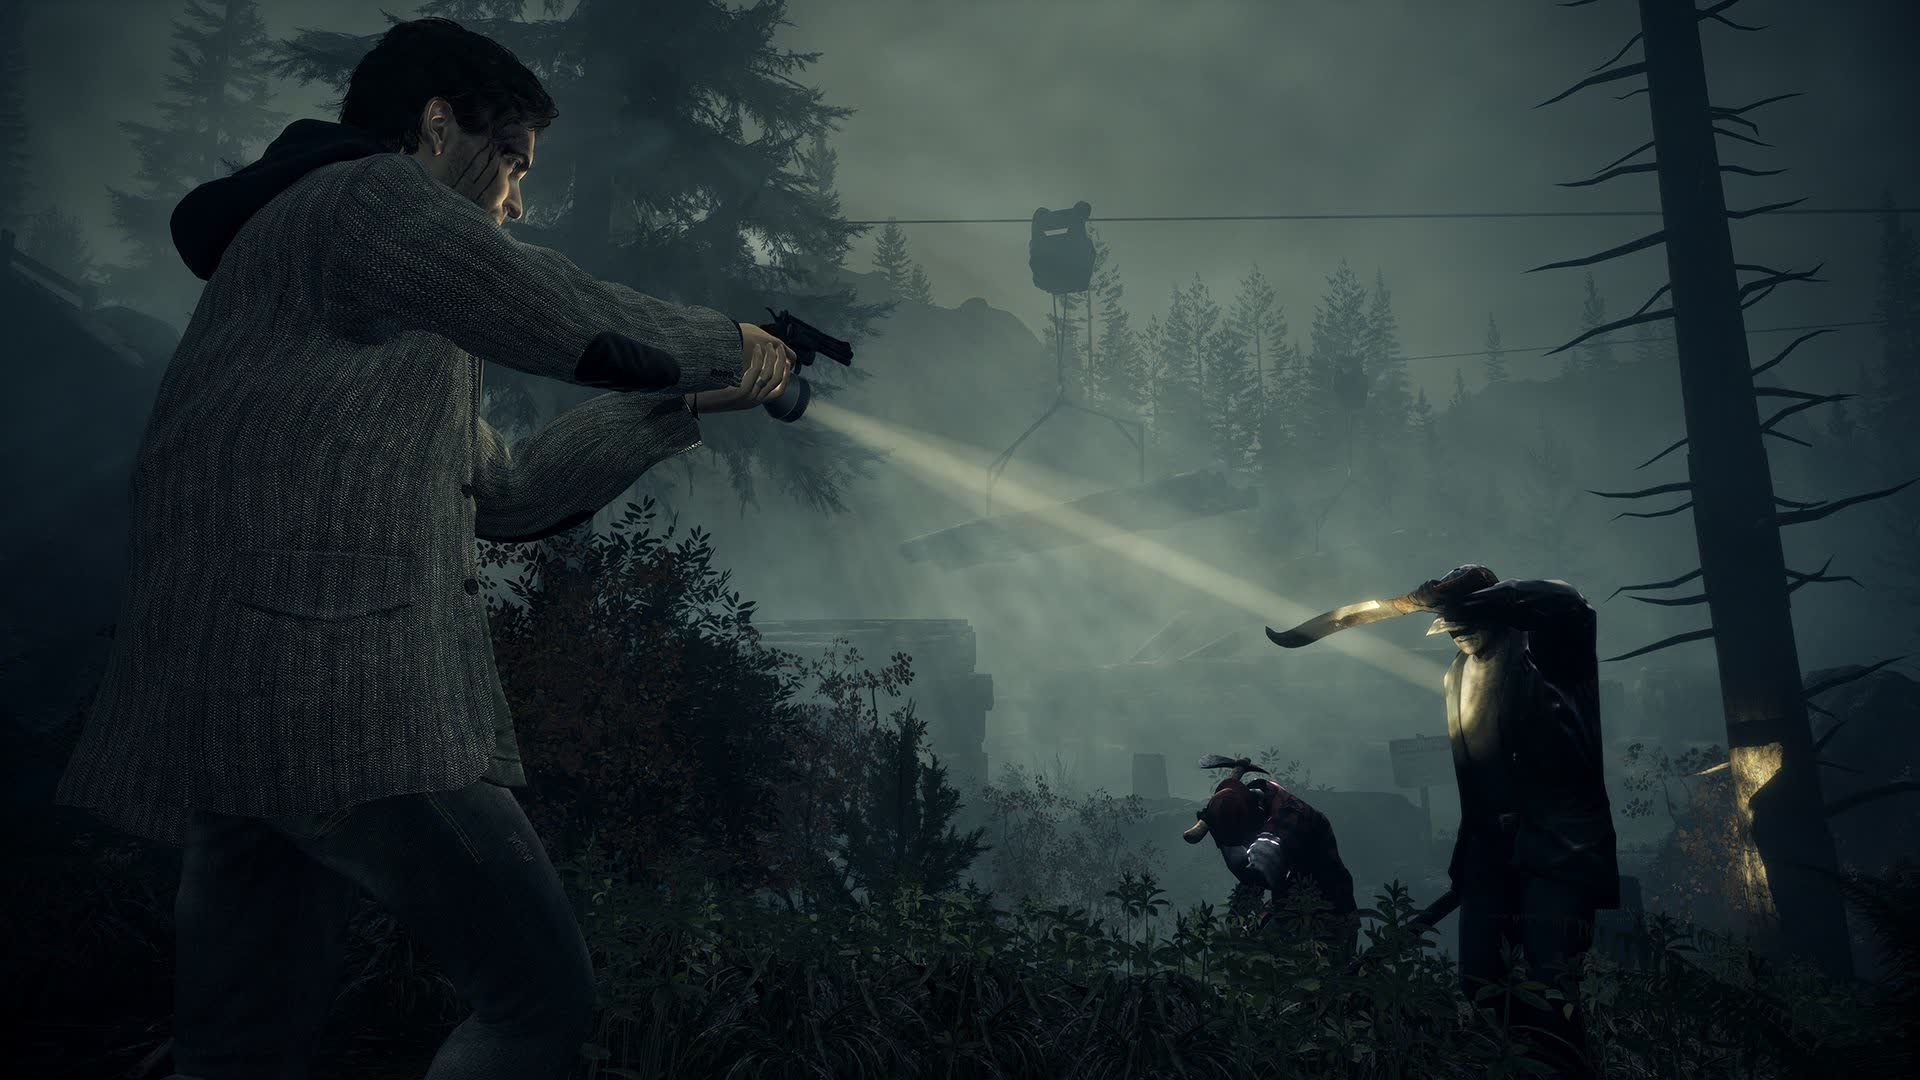 Here's what Alan Wake Remastered looks like in 4K on the PlayStation 5